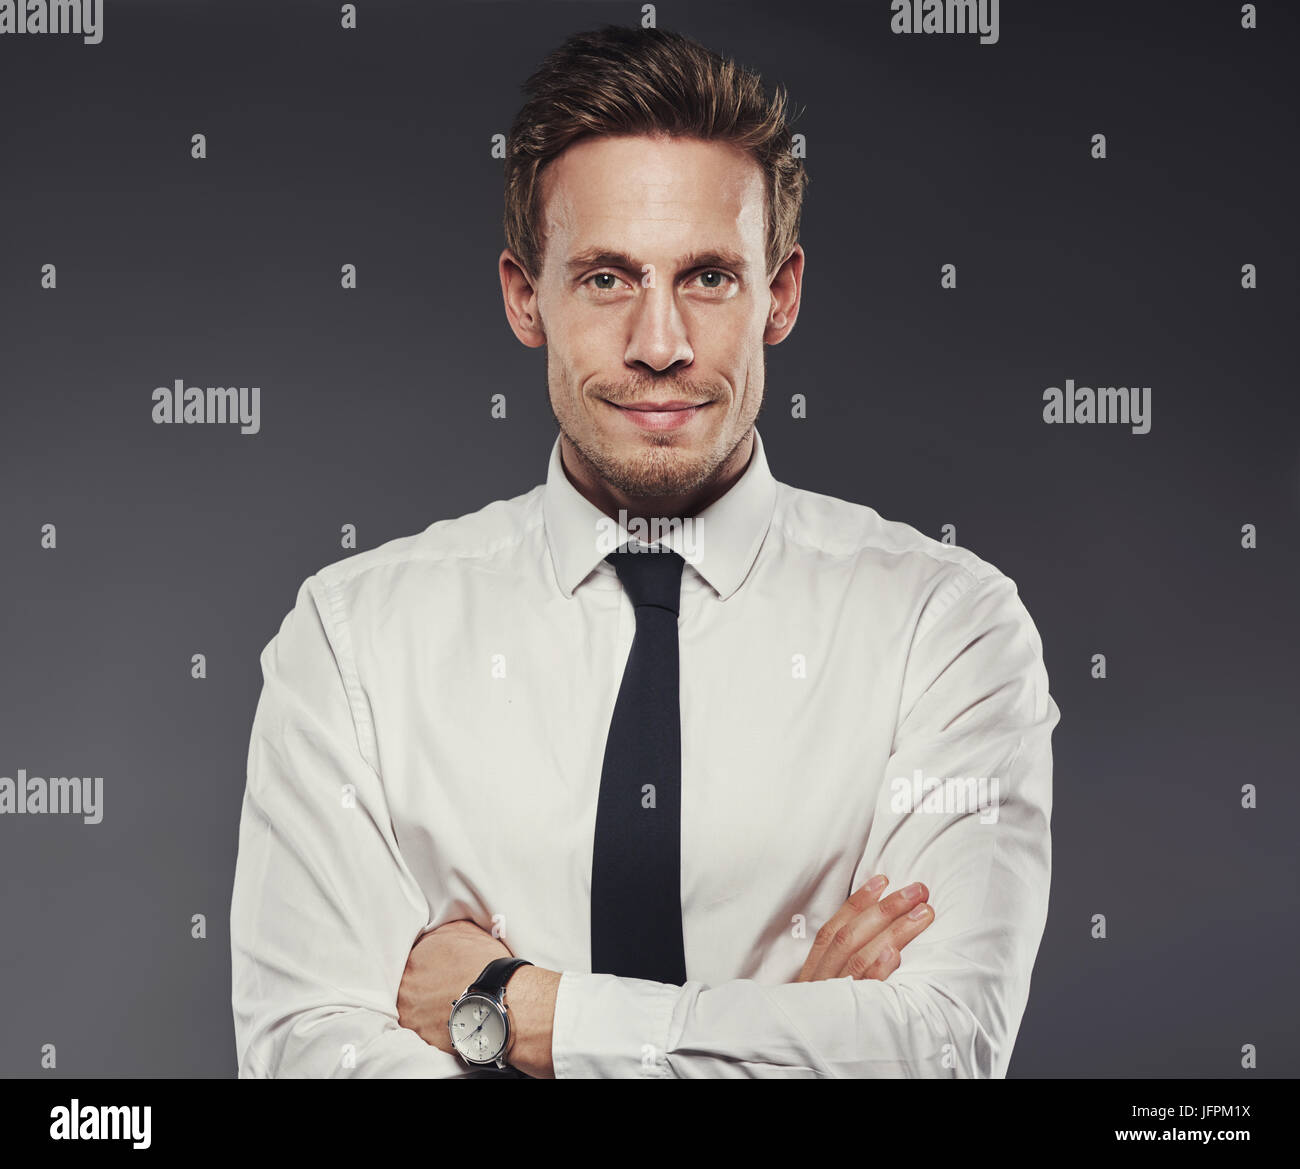 Handsome young businessman wearing a shirt and tie smiling and standing with his arms crossed alone in a studio - Stock Image